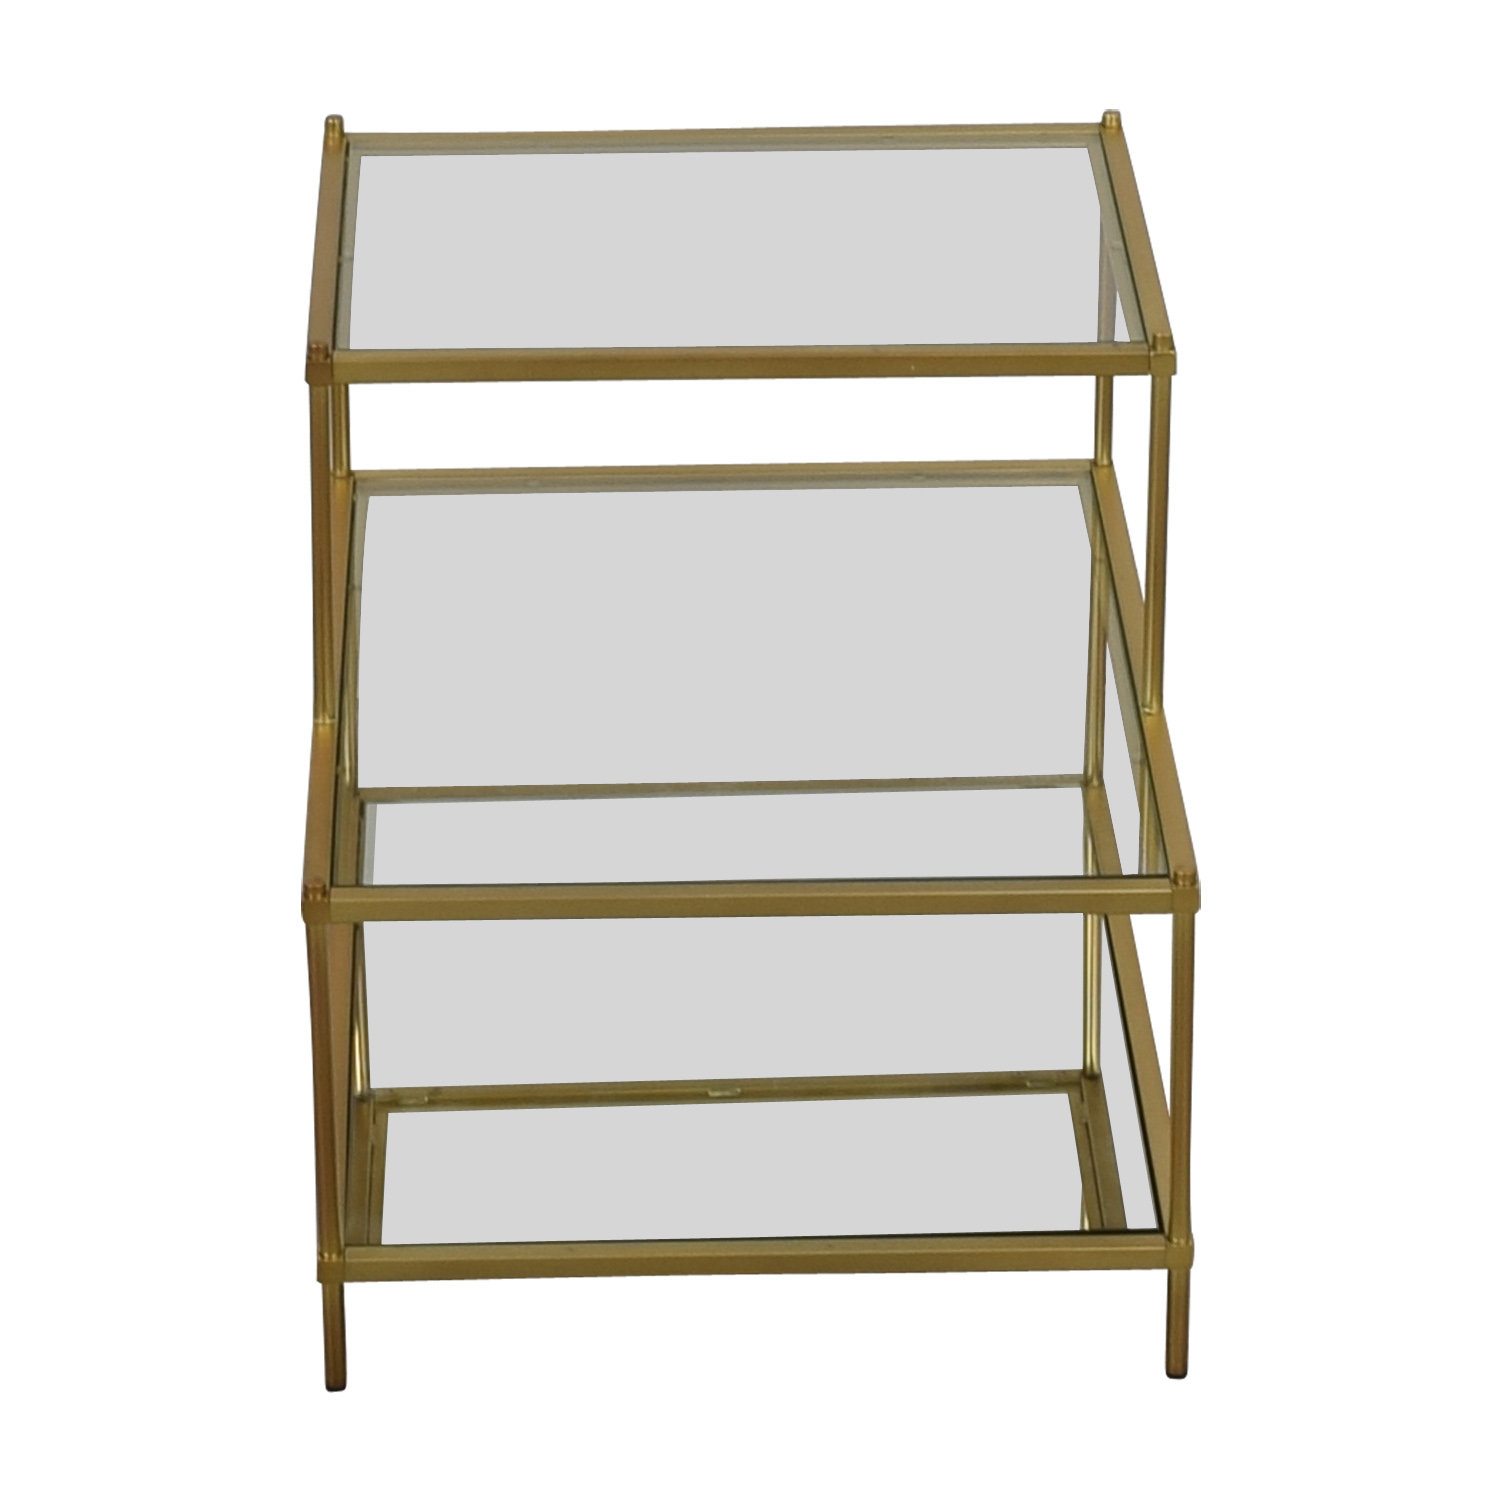 West Elm West Elm Terrace Antique Brass and Glass Nightstand on sale